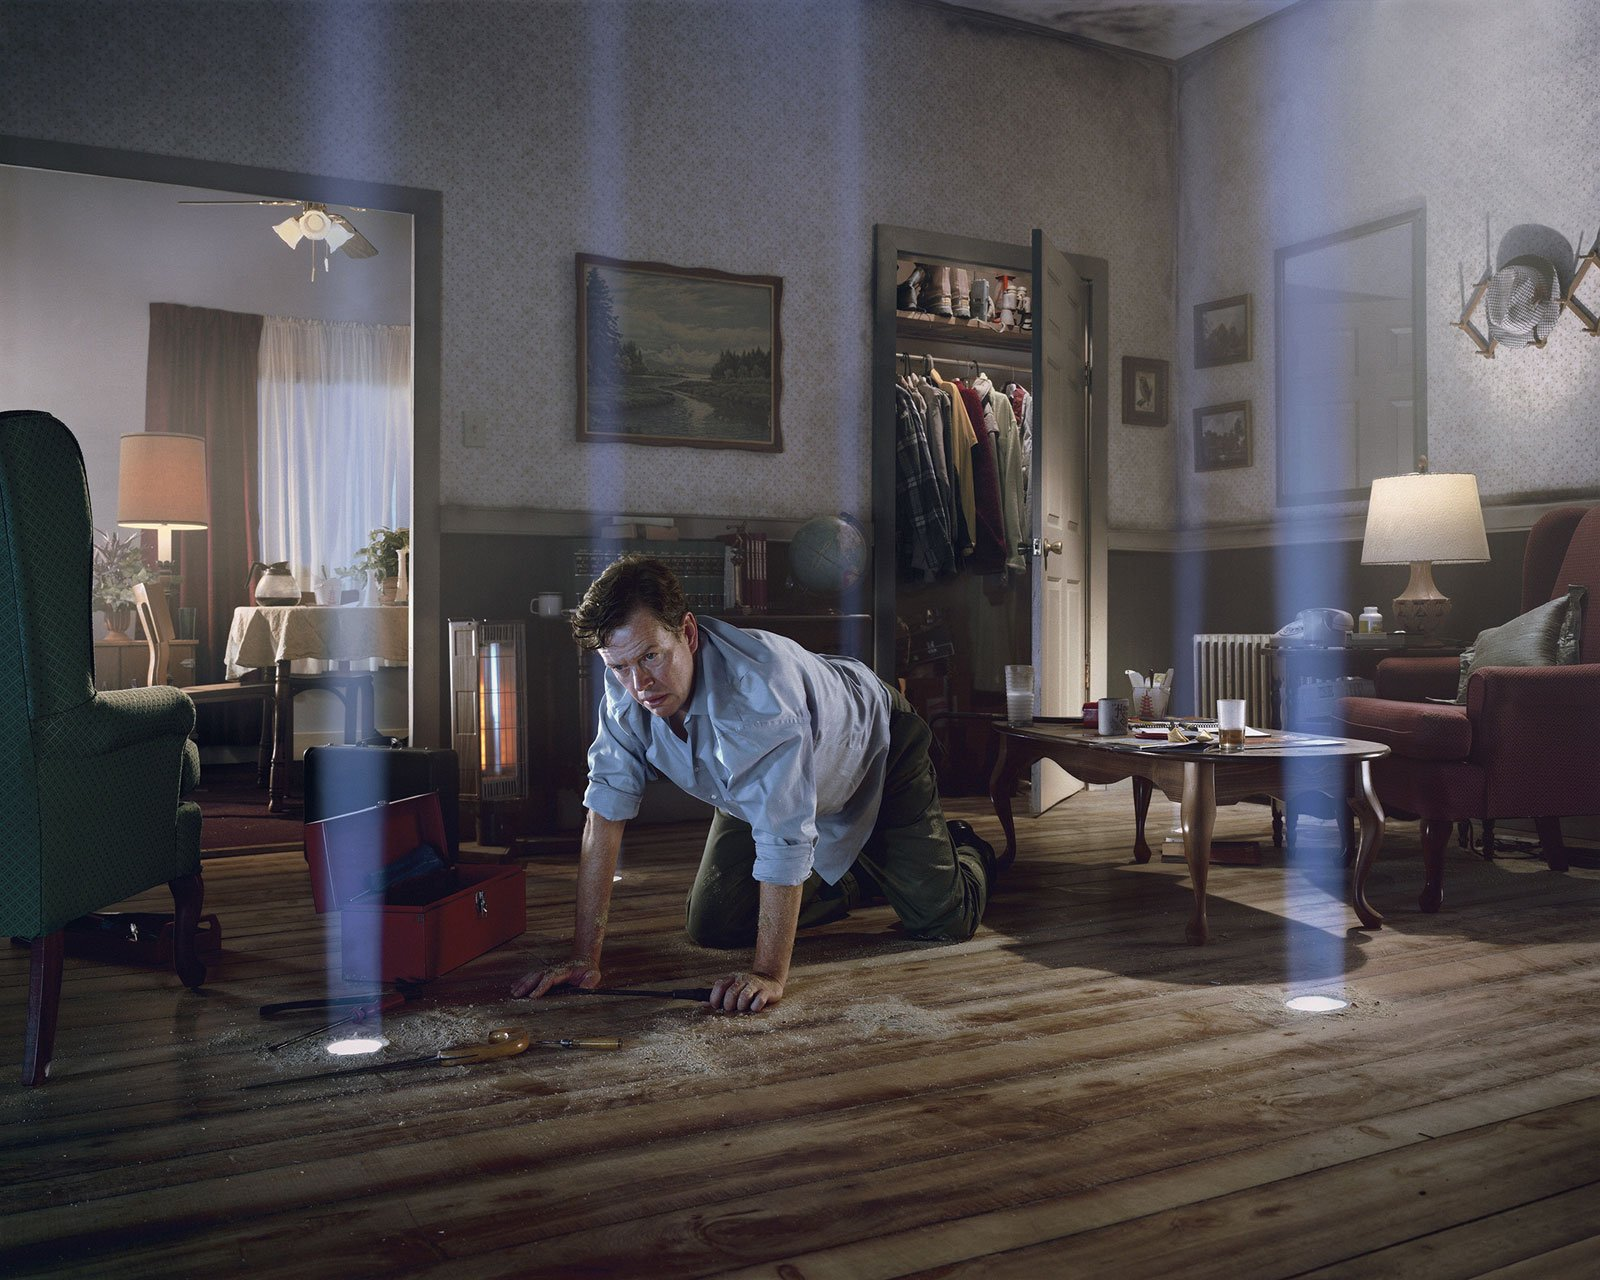 hight resolution of dylan baker in a photograph from dream house by gregory crewdson